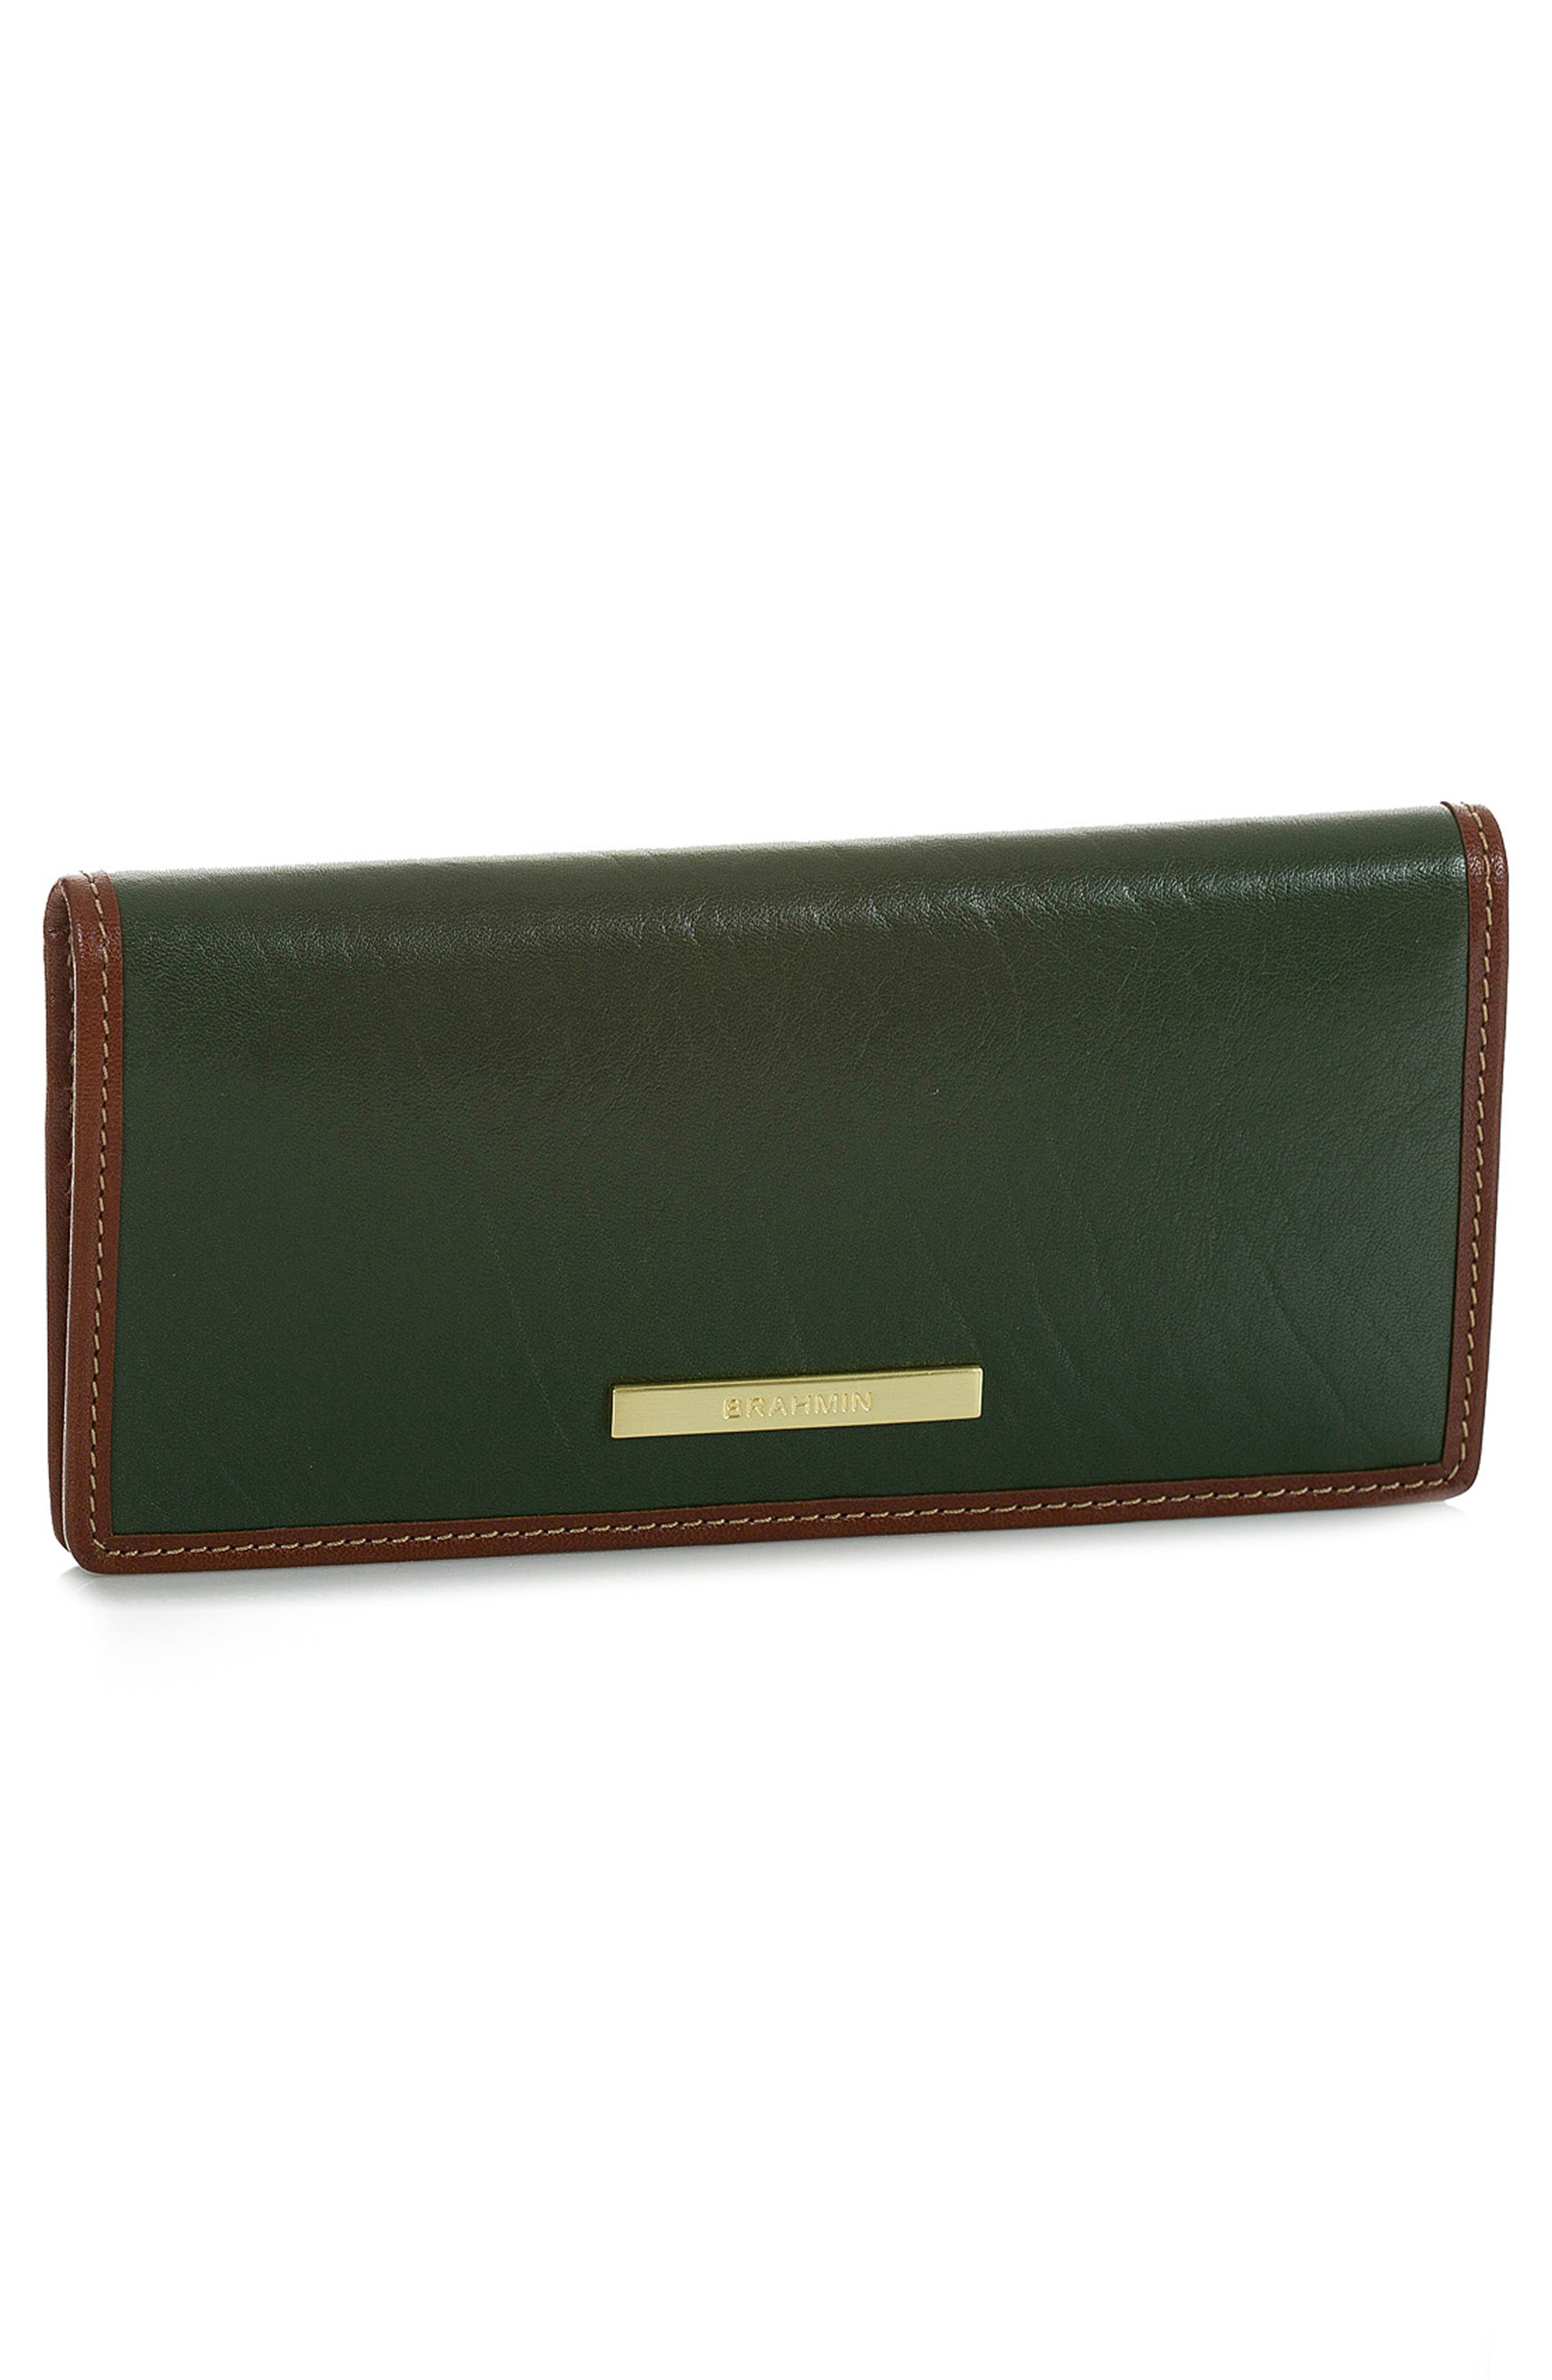 Ady Leather Wallet,                             Alternate thumbnail 4, color,                             HUNTER